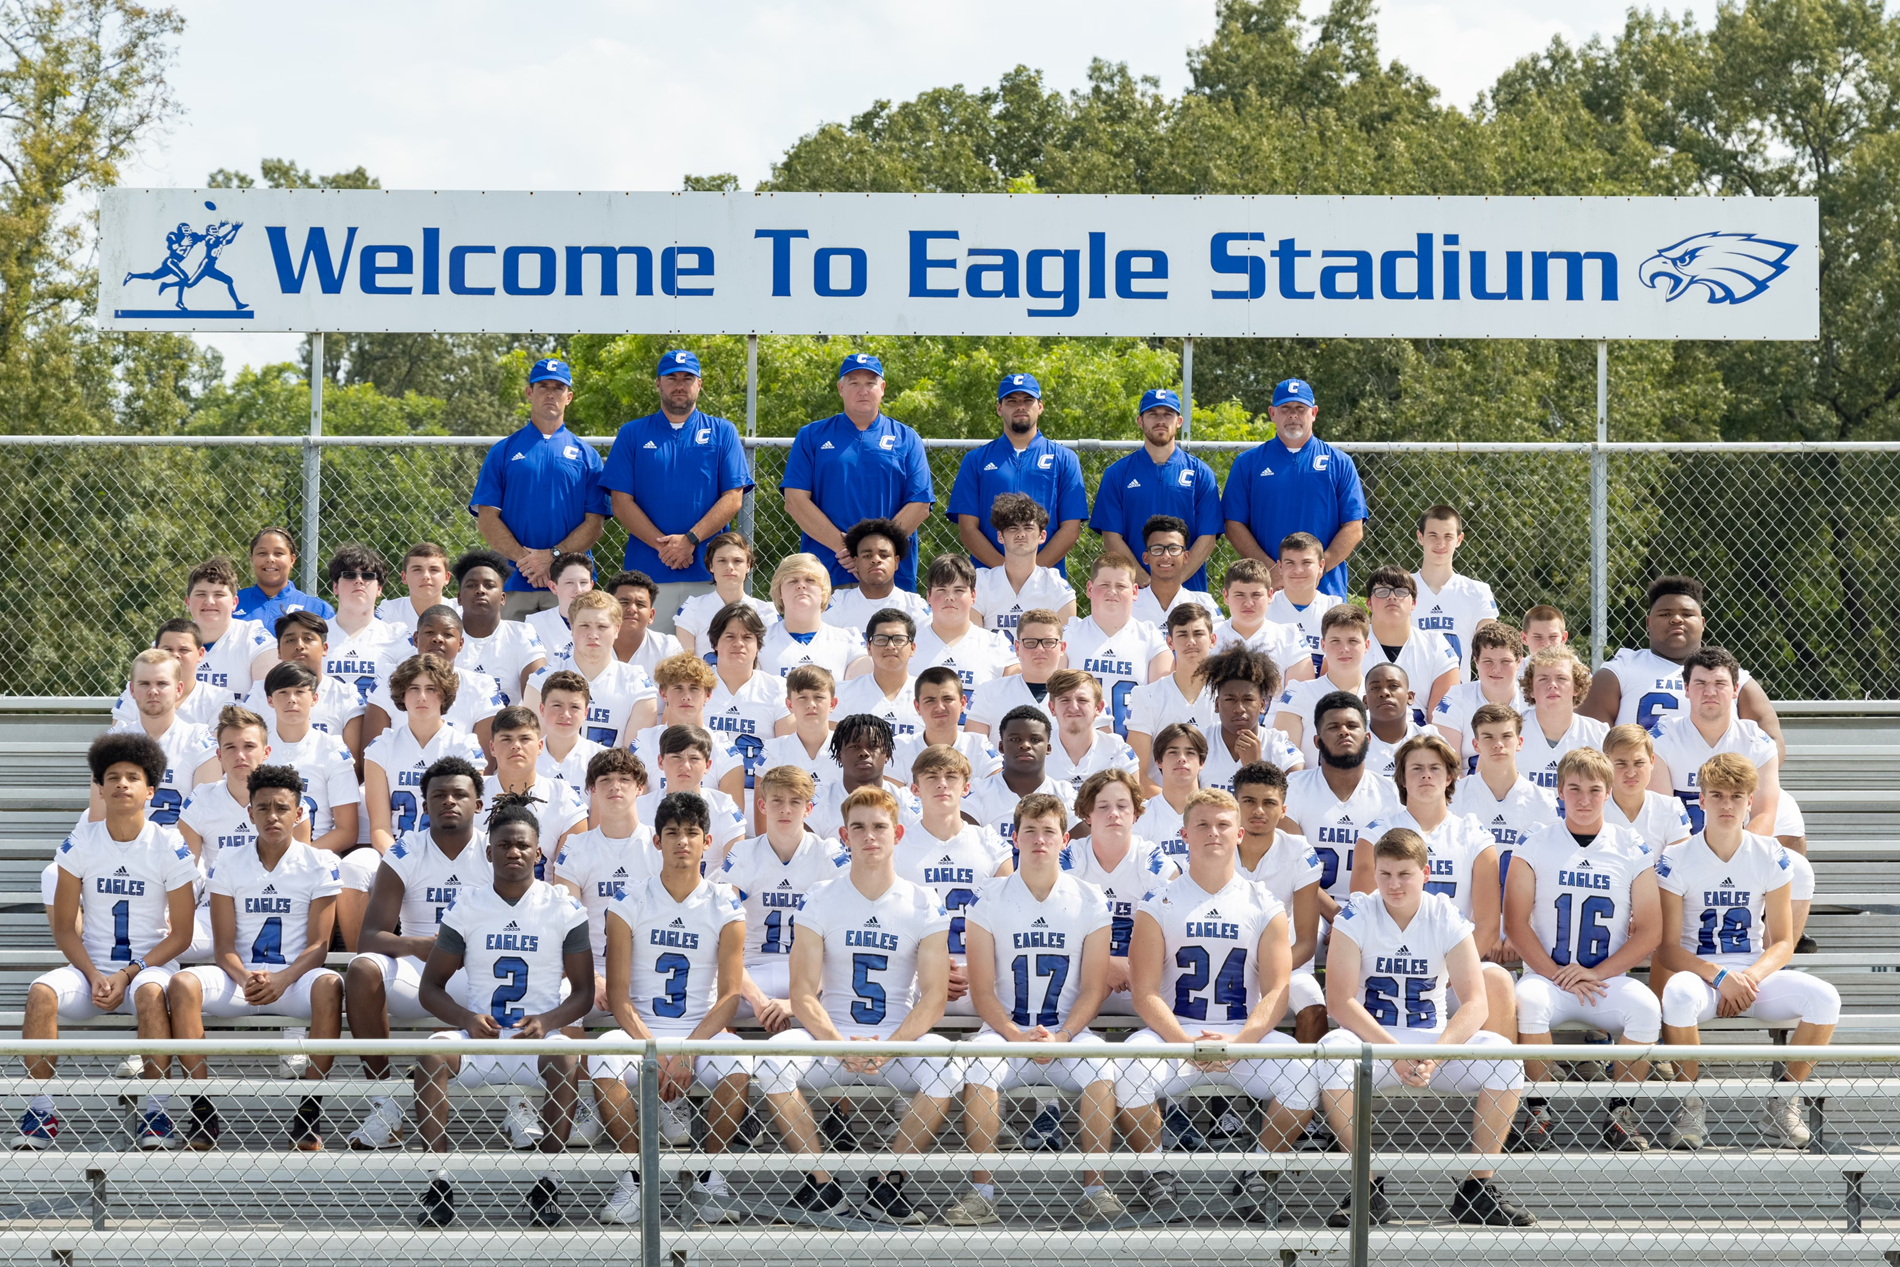 Chester County Eagles Football